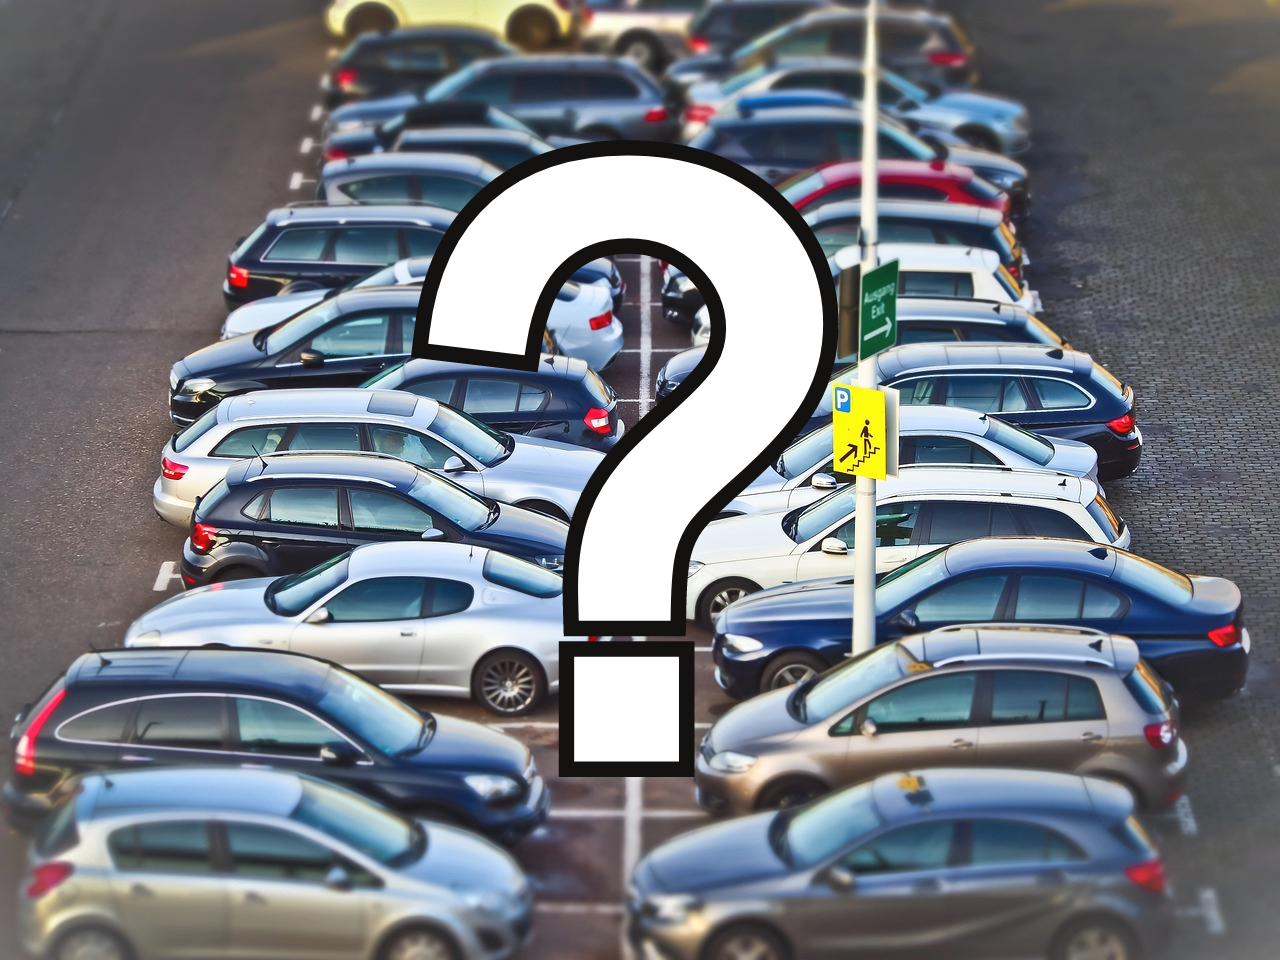 cars parked.png (1.71 MB)